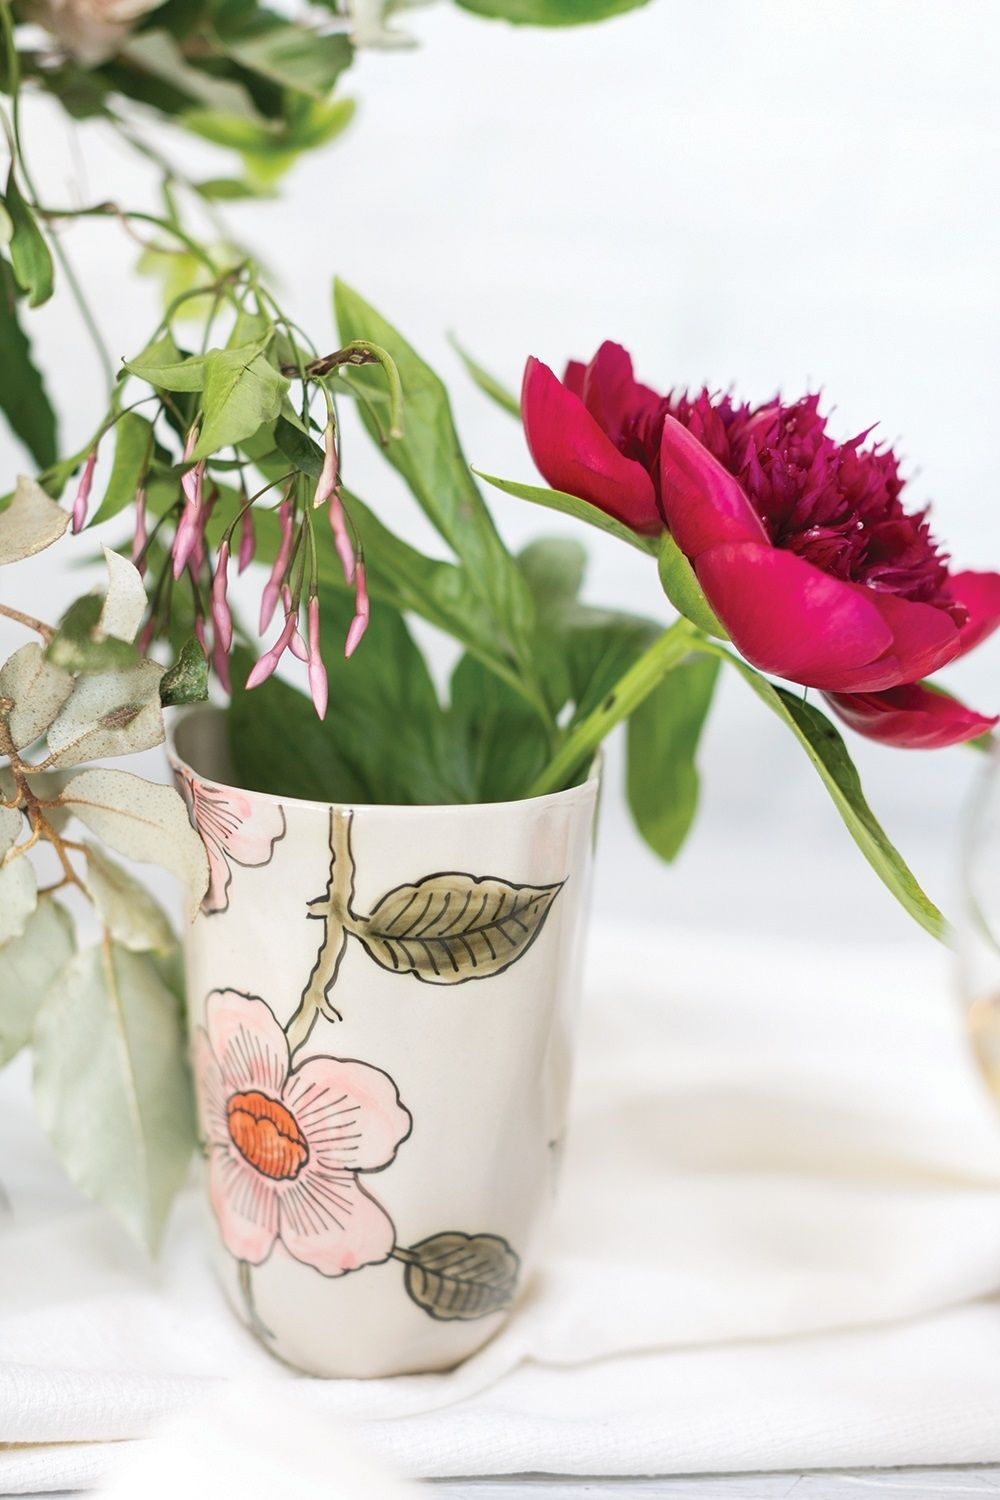 Little daisy collection 45x 6 vase by accent decor floral the little daisy collection vase featuring peony and jasmine by accent decor in atlanta georgia izmirmasajfo